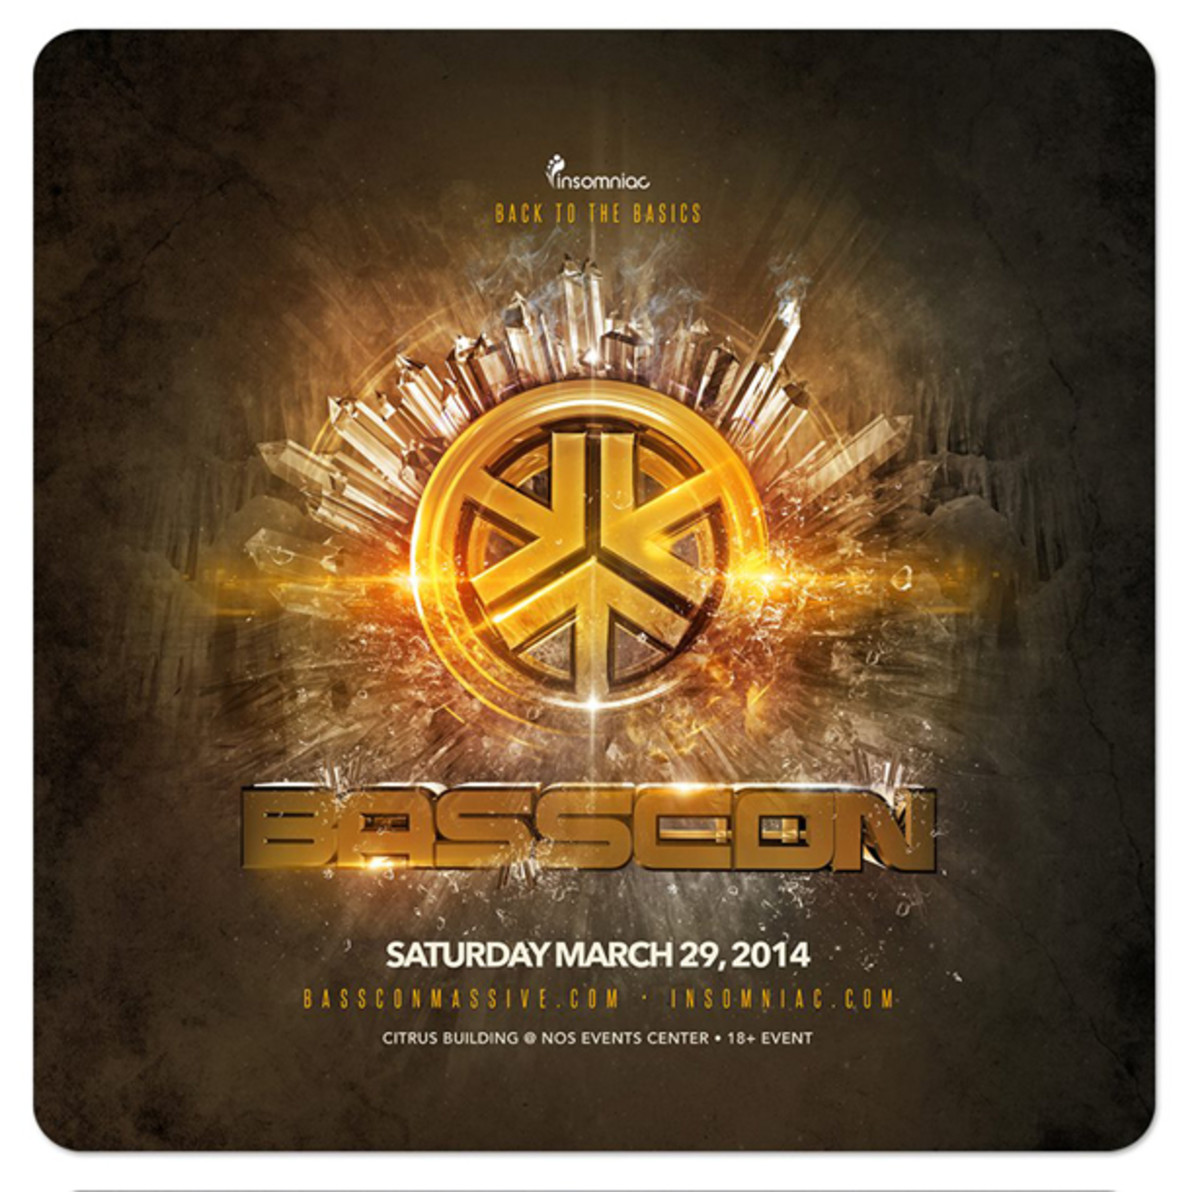 Insomniac Announces First Basscon Massive of 2014 To Take Place At NOS Events Center - EDM News